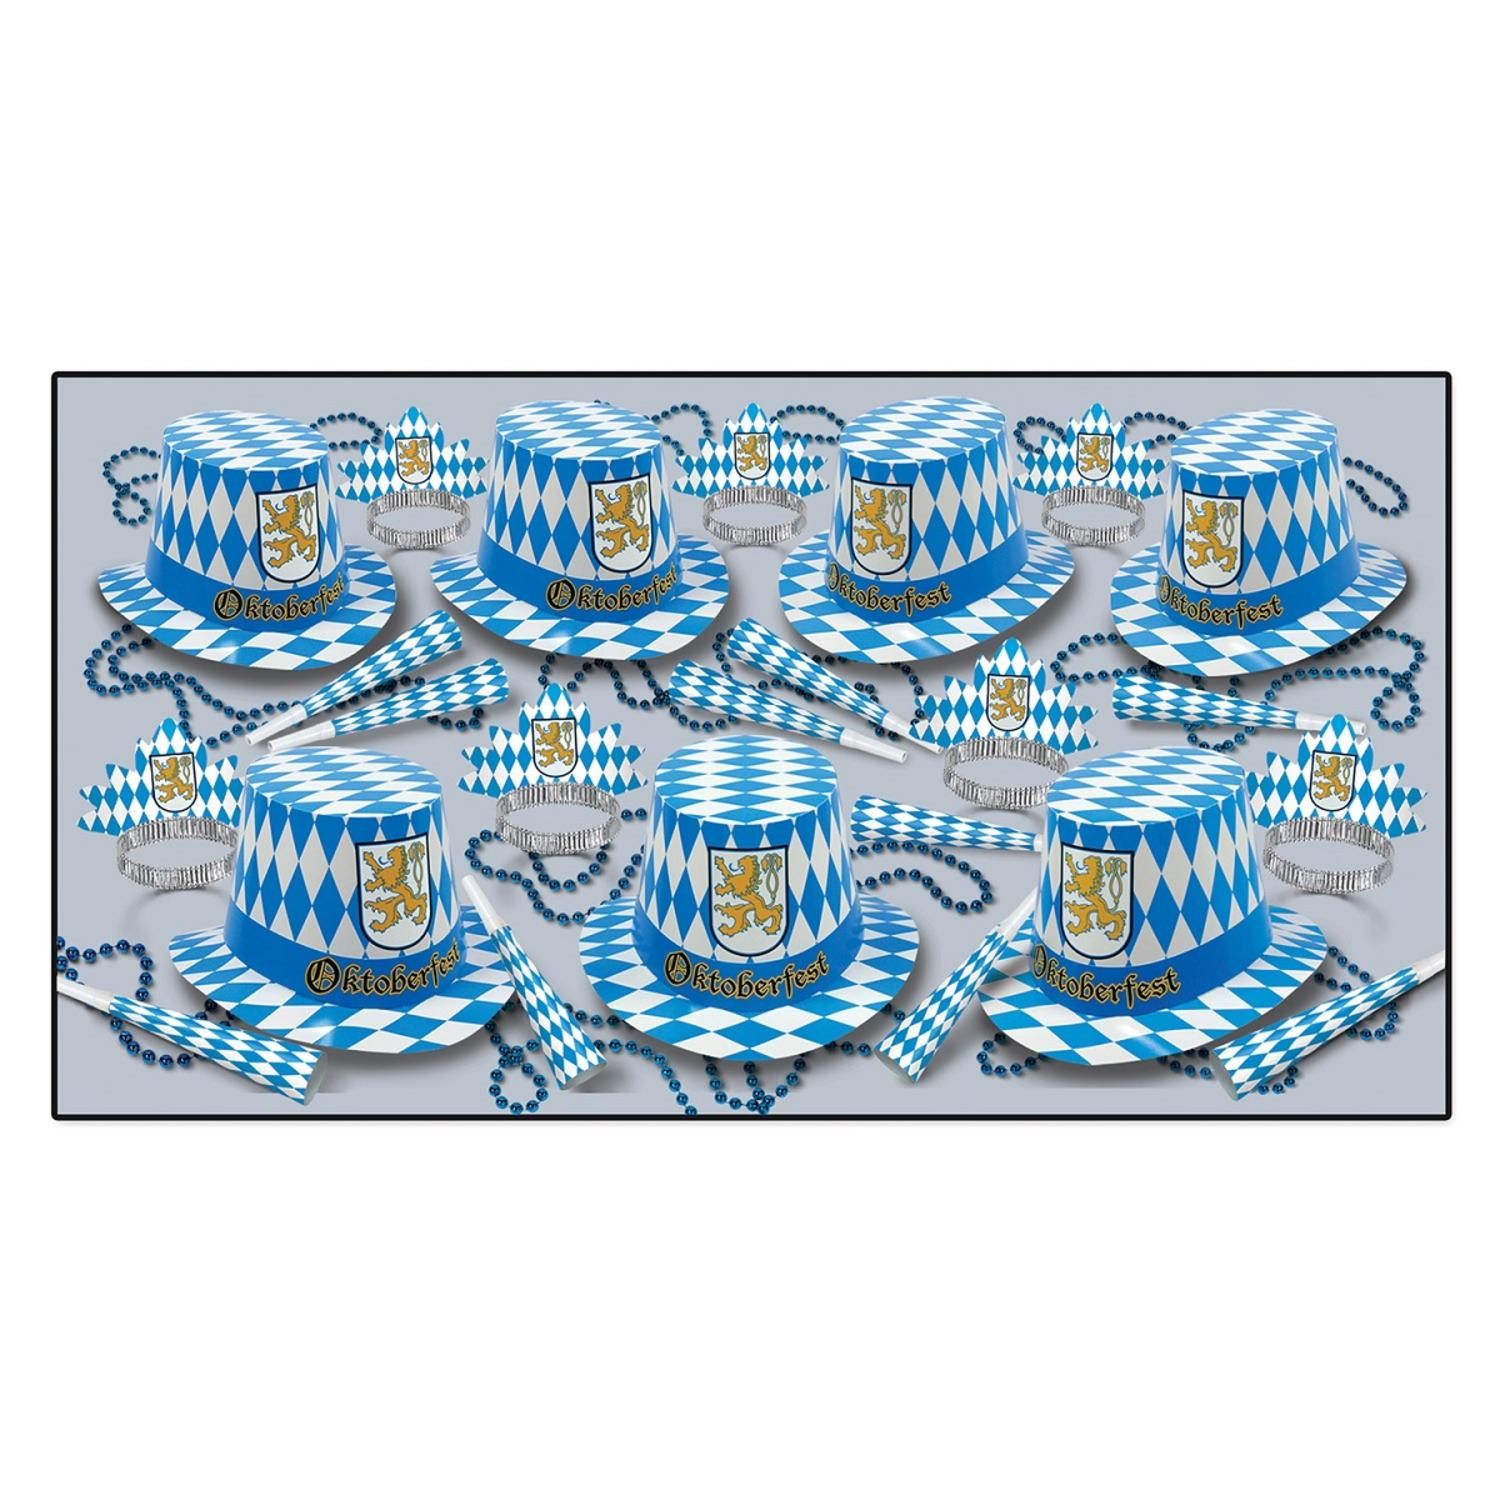 50-Person Set of Oktoberfest Hats, Tiaras, Printed Horns, Party Beads in White, Gold, and Blue